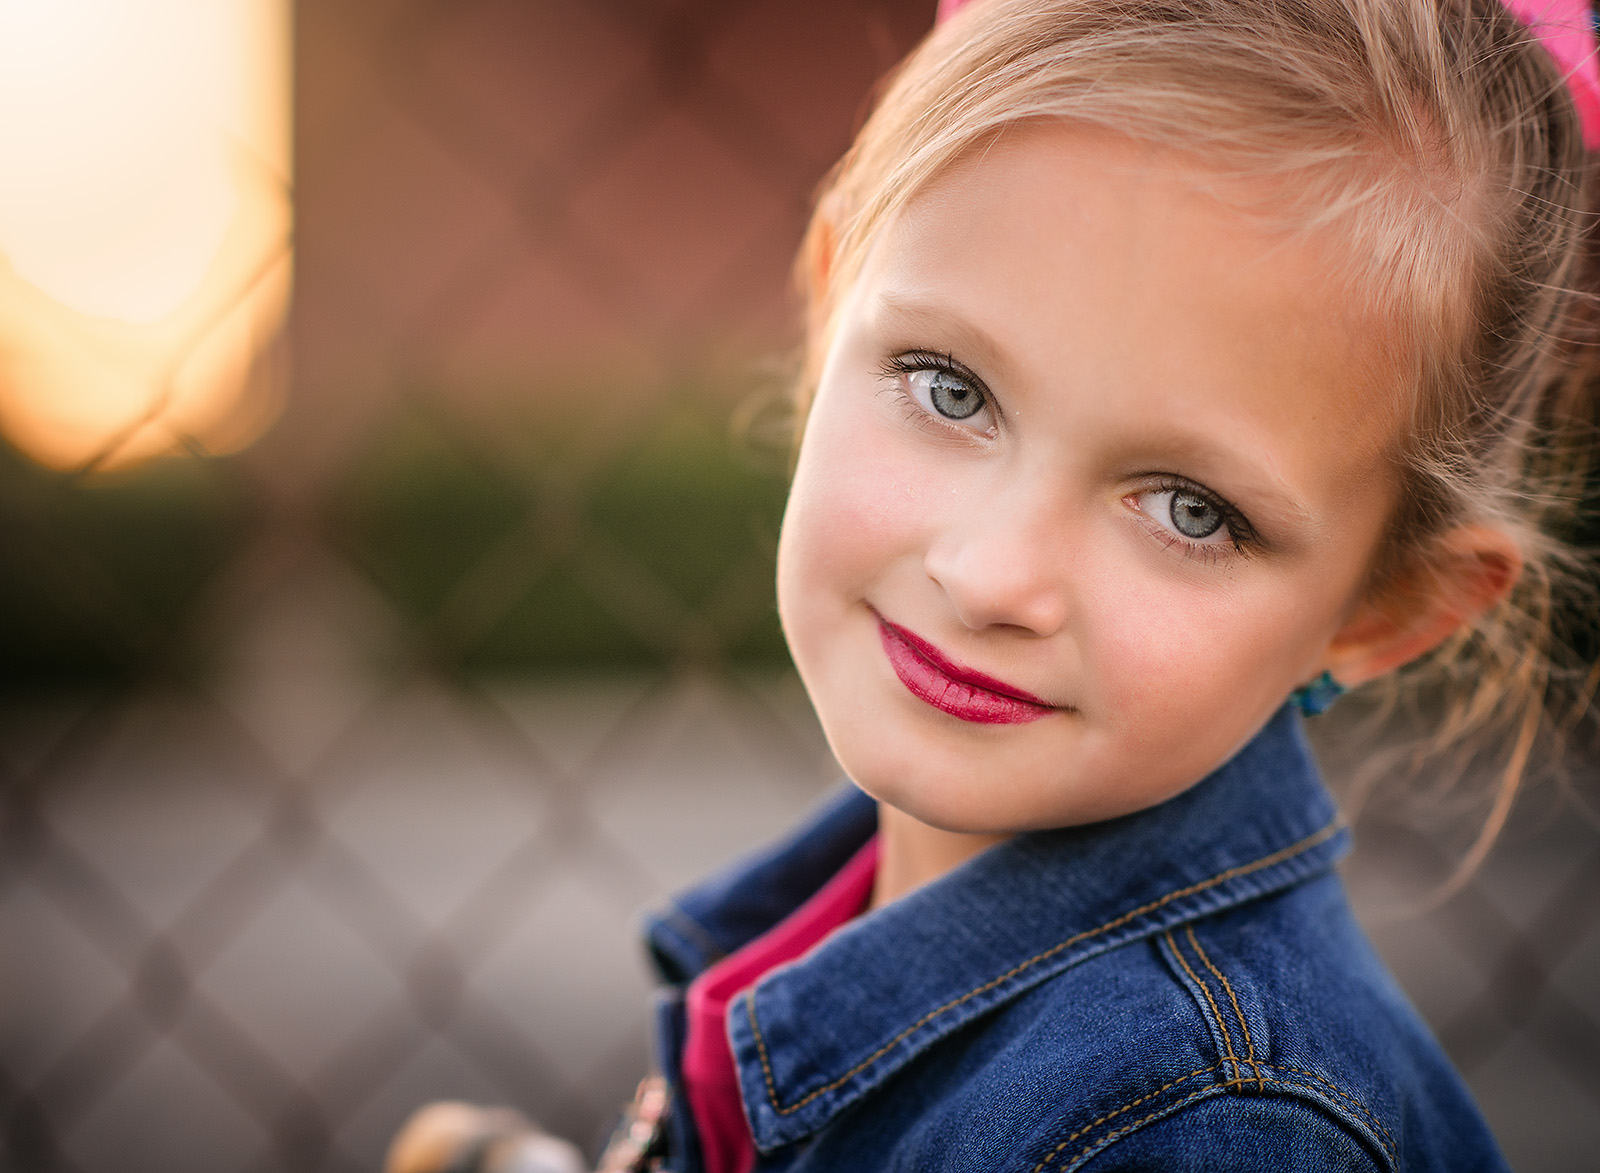 A little girl wearing lipstick poses for a photo